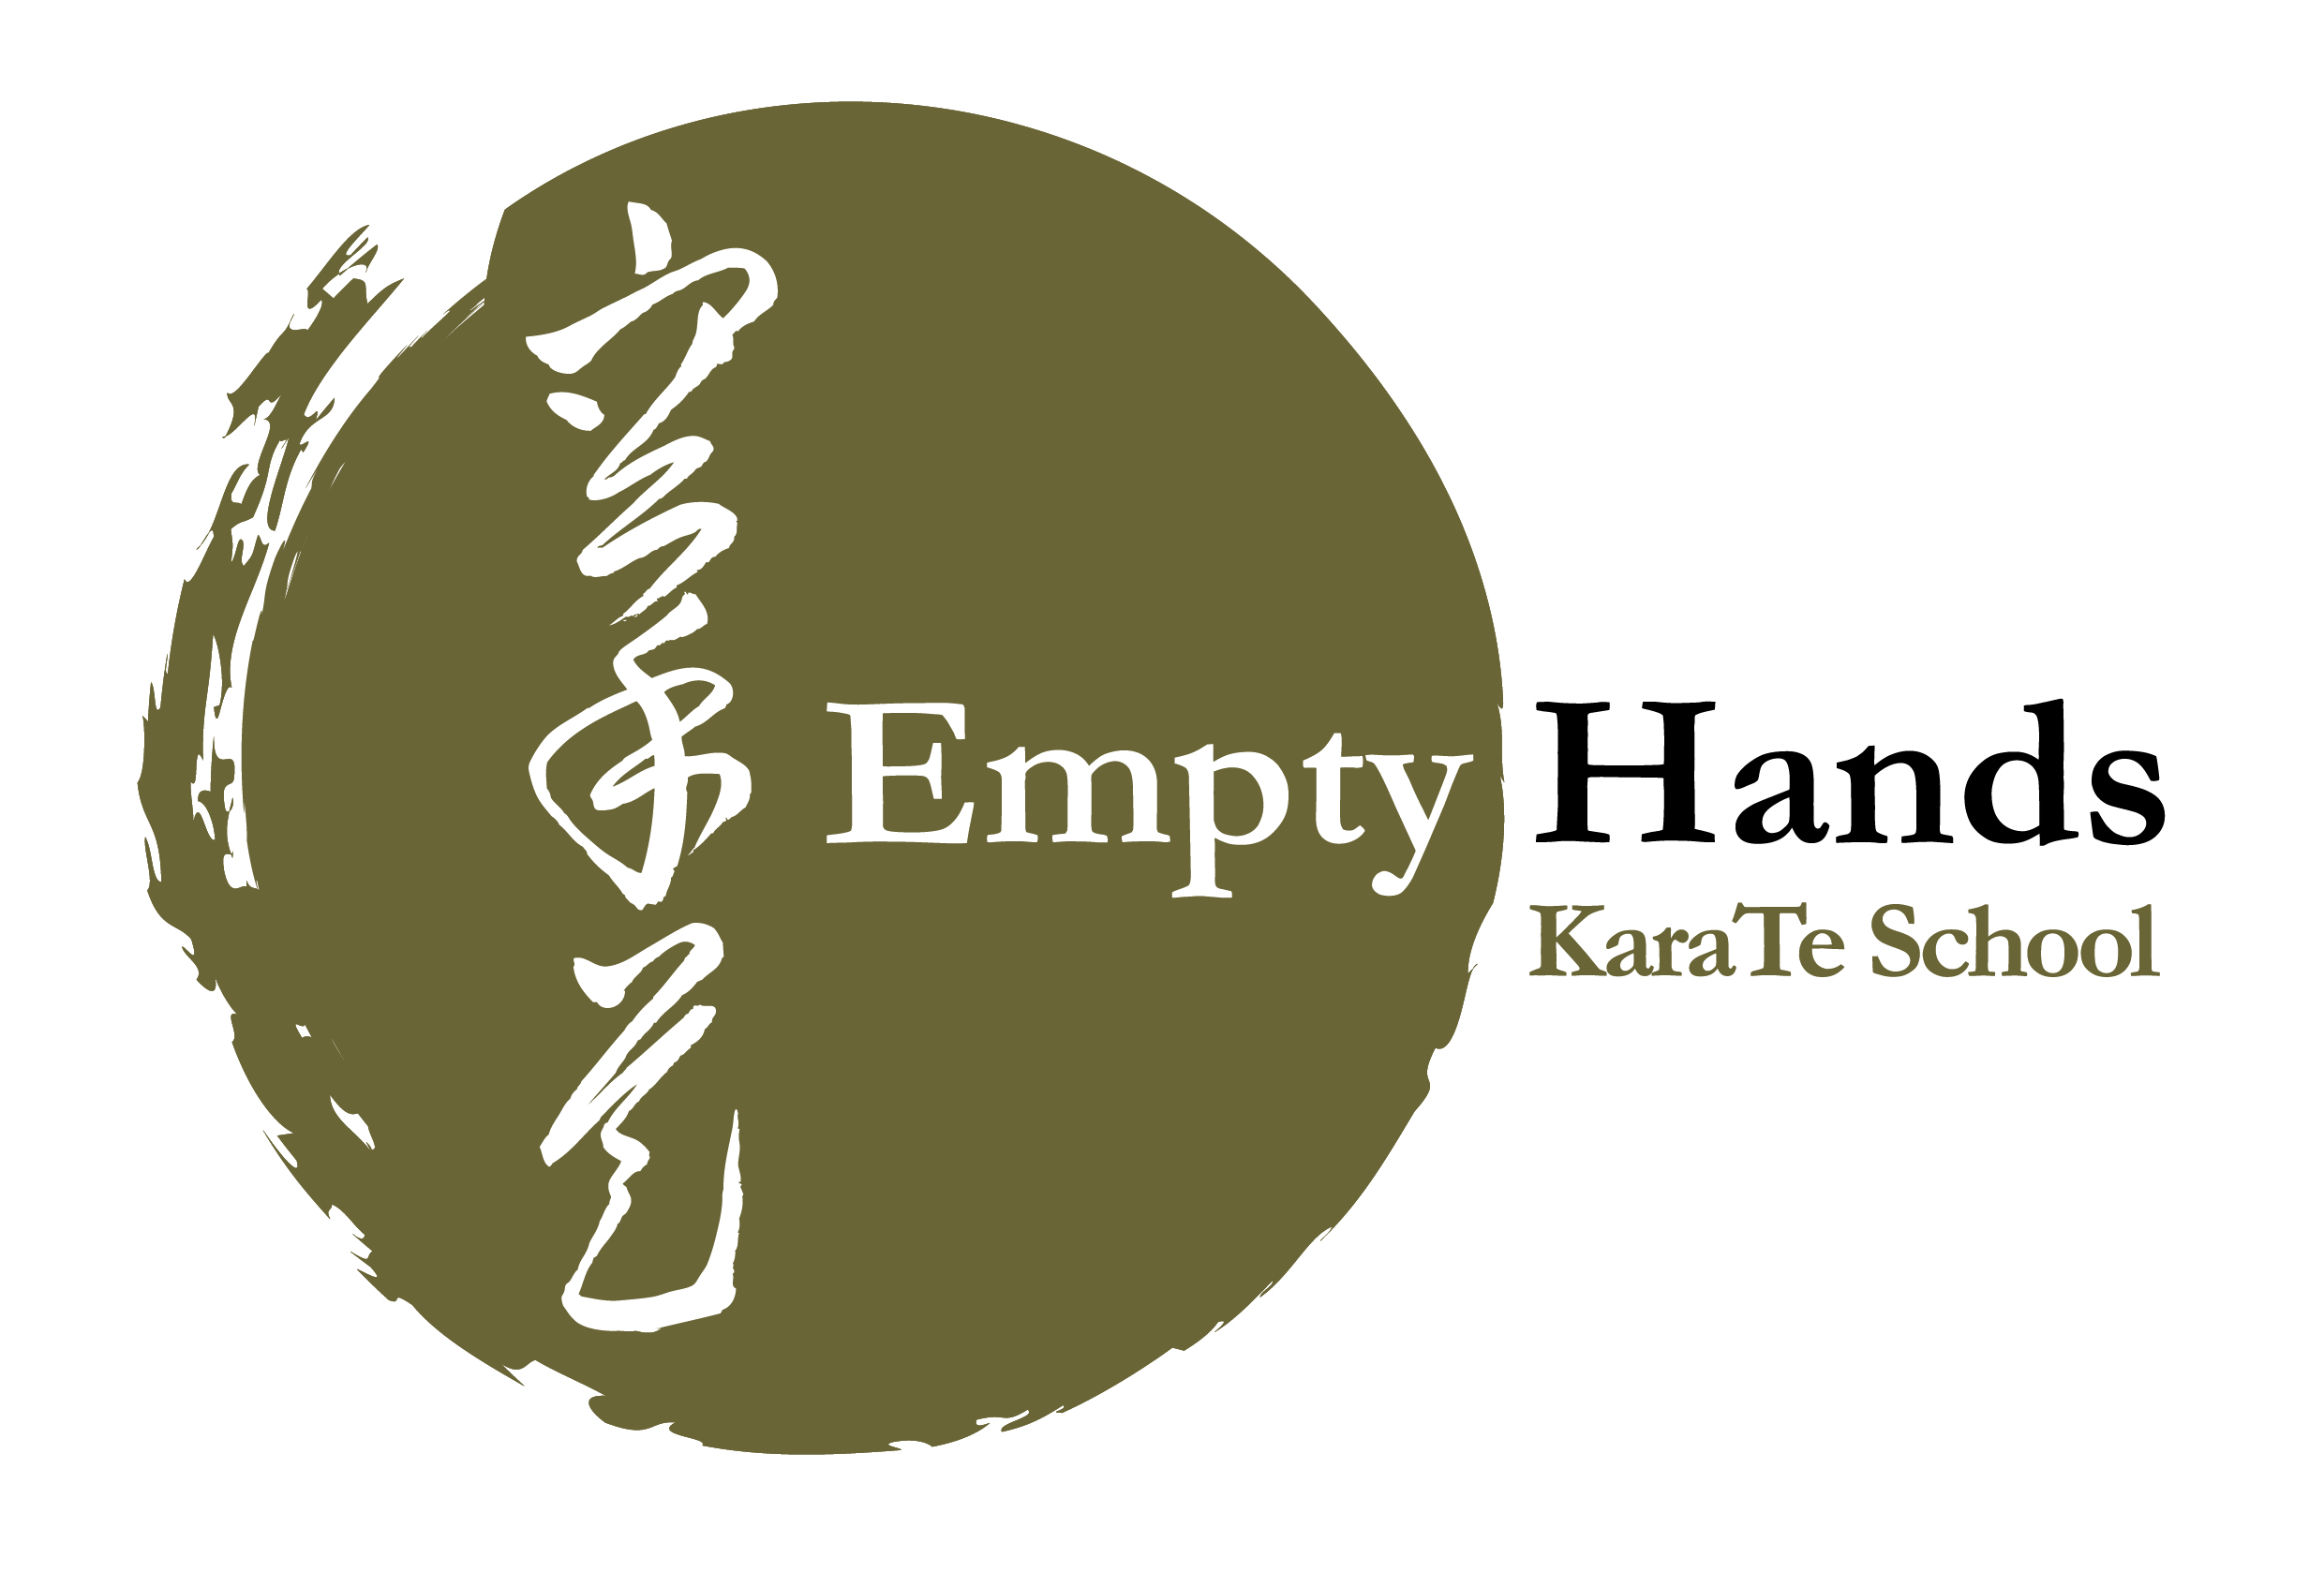 Emptyhands Karate School